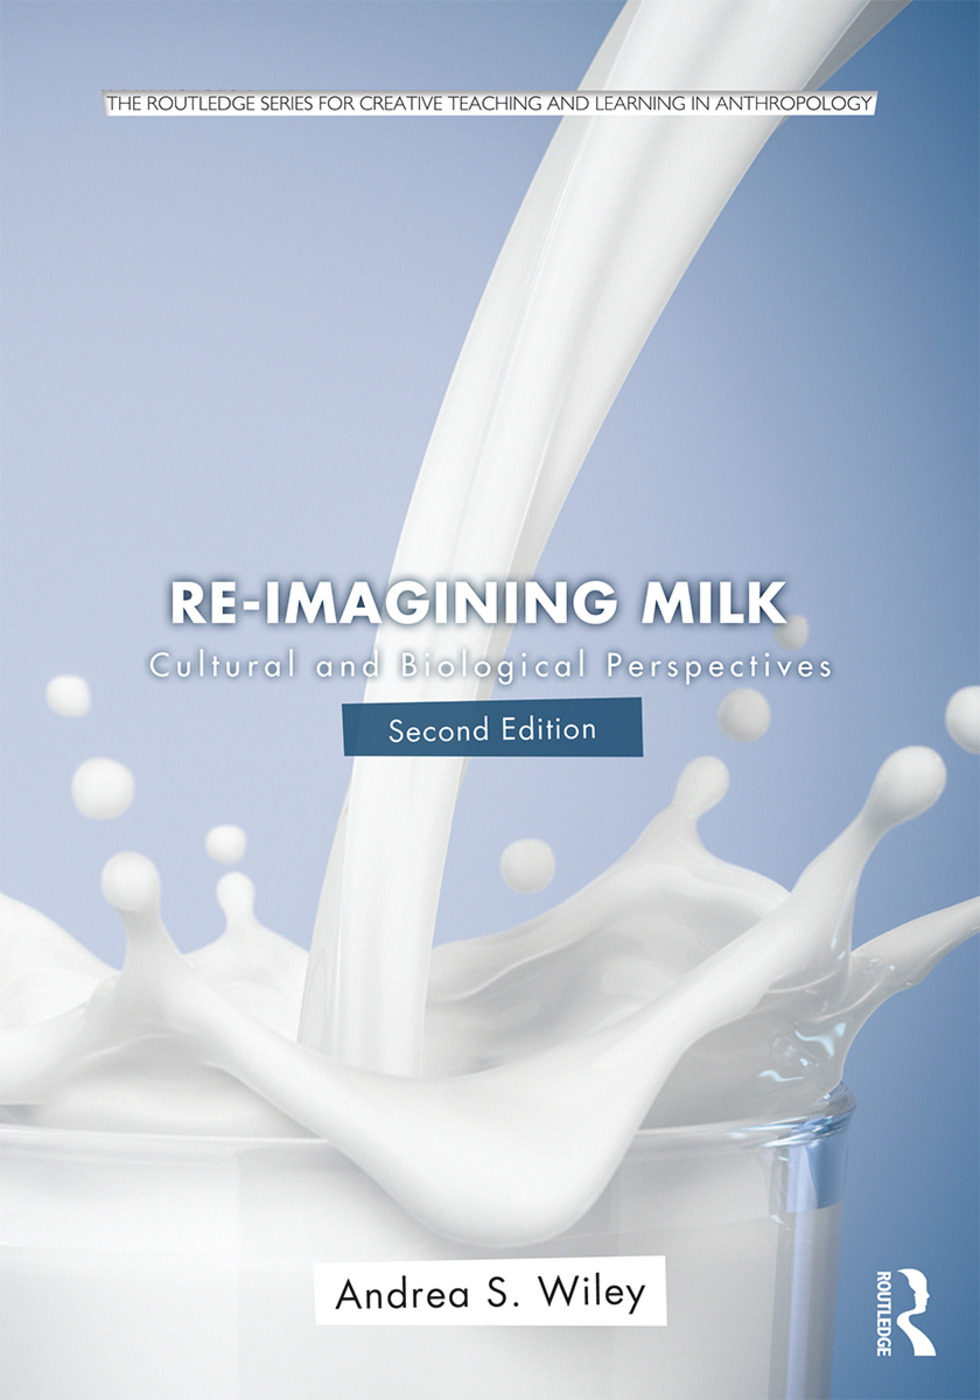 Re-imagining Milk. Cultural and Biological Perspectives